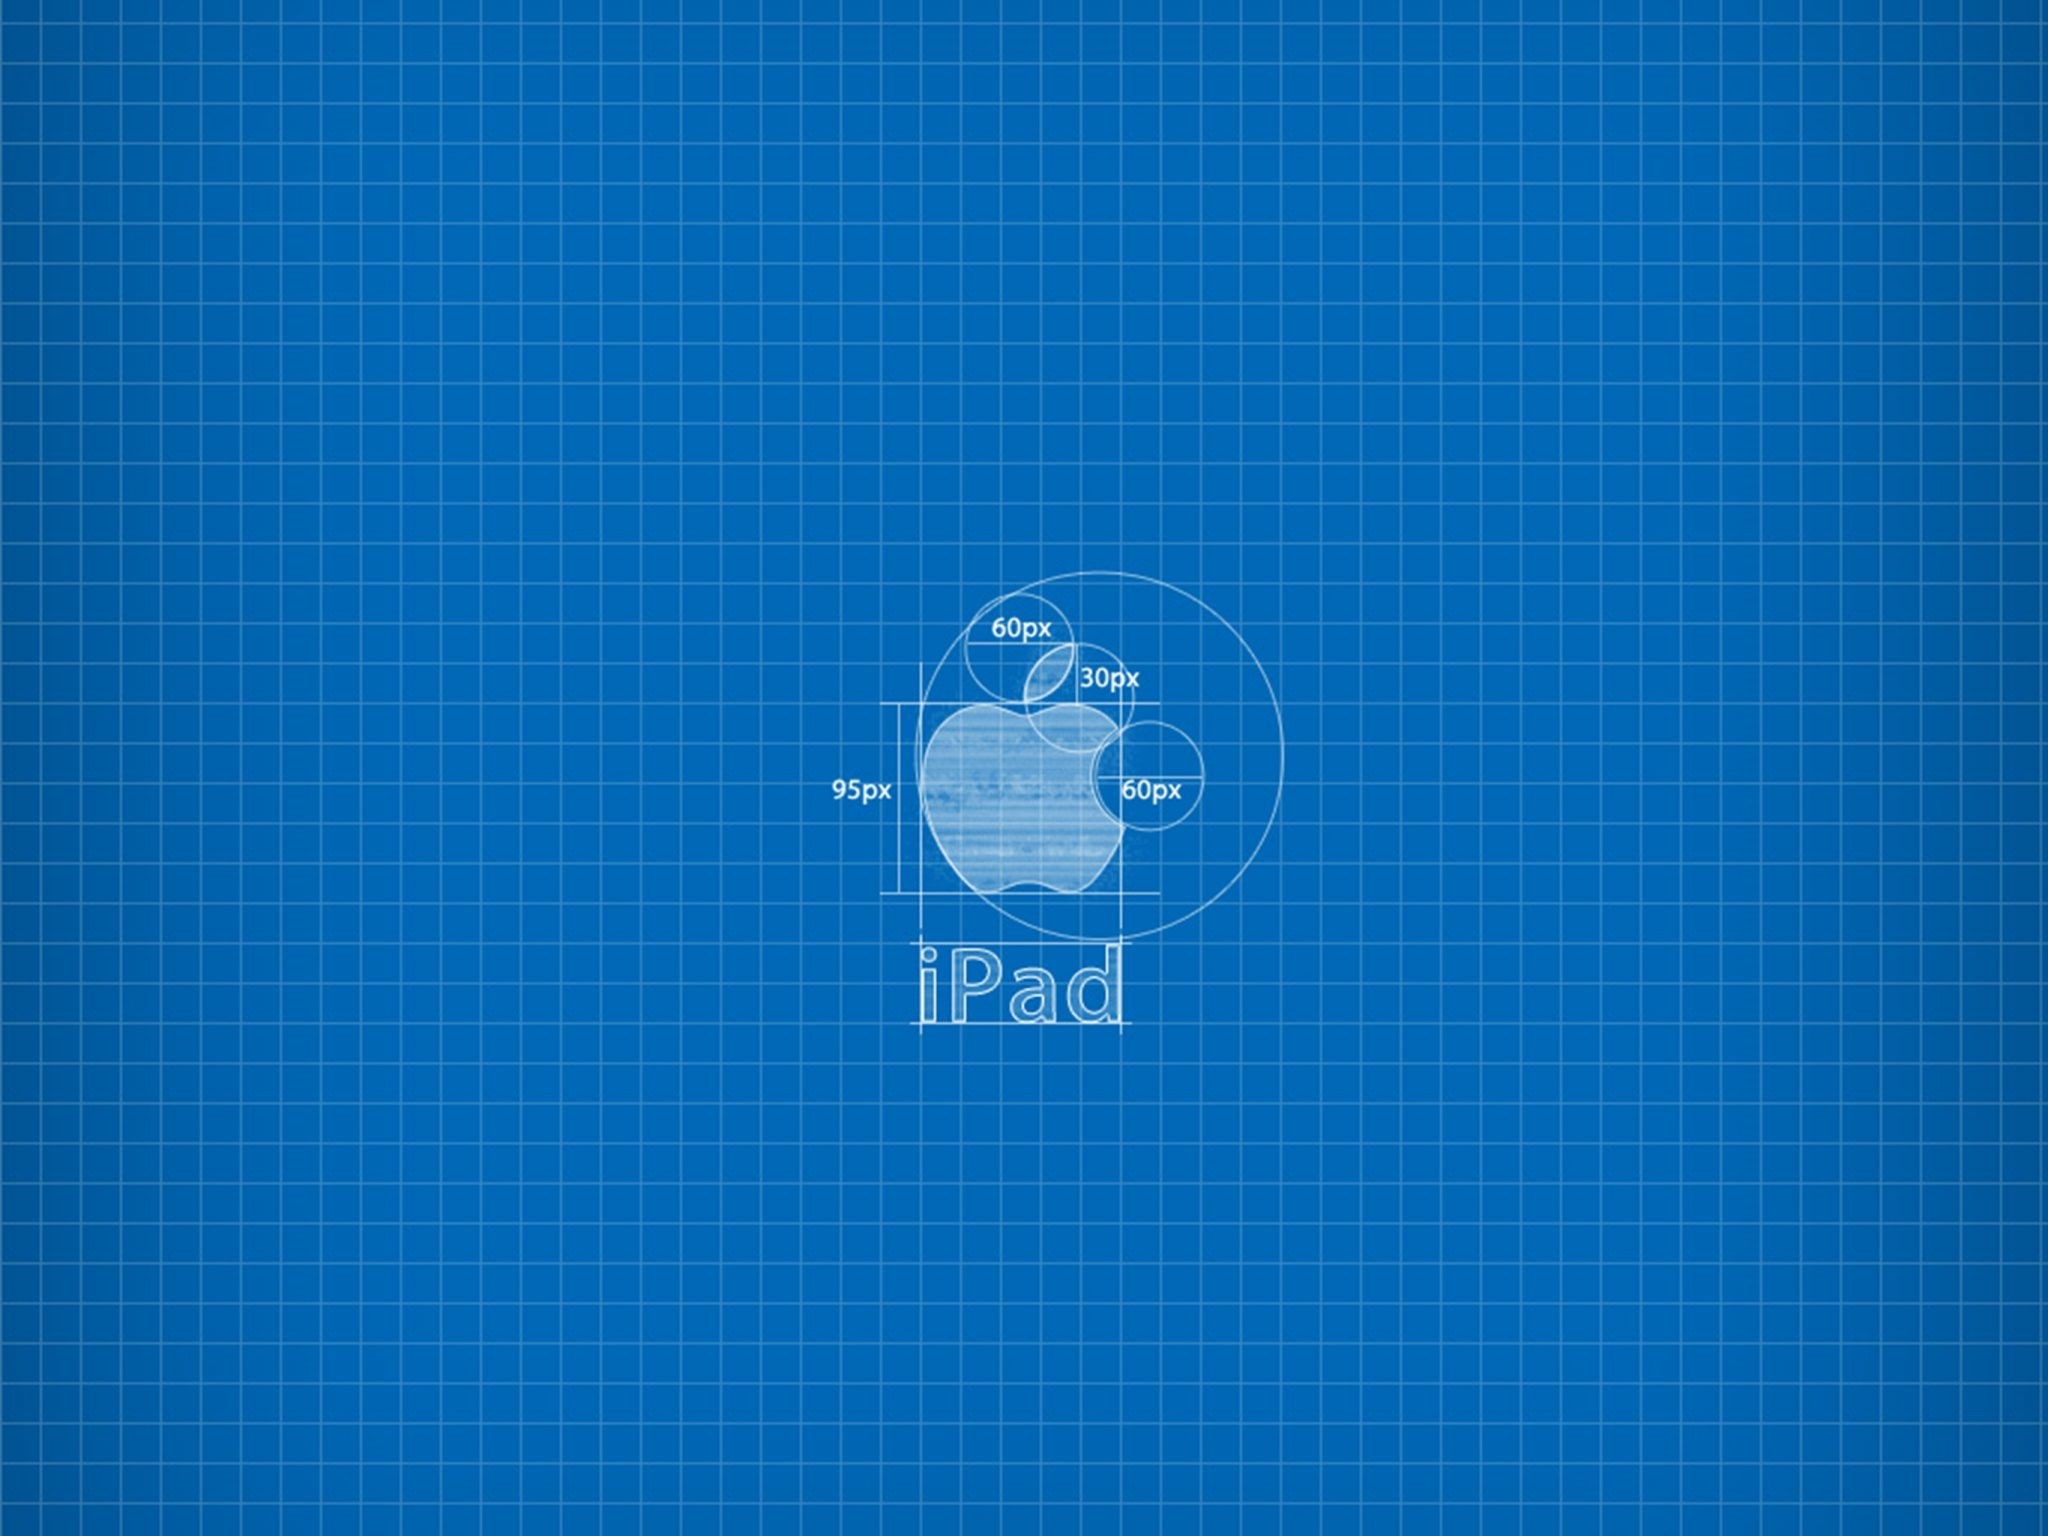 Image Detail For Colorful Ipad Wallpaper Hd 1024x1024: HD IPad Wallpapers 2048x1536 (92+ Images